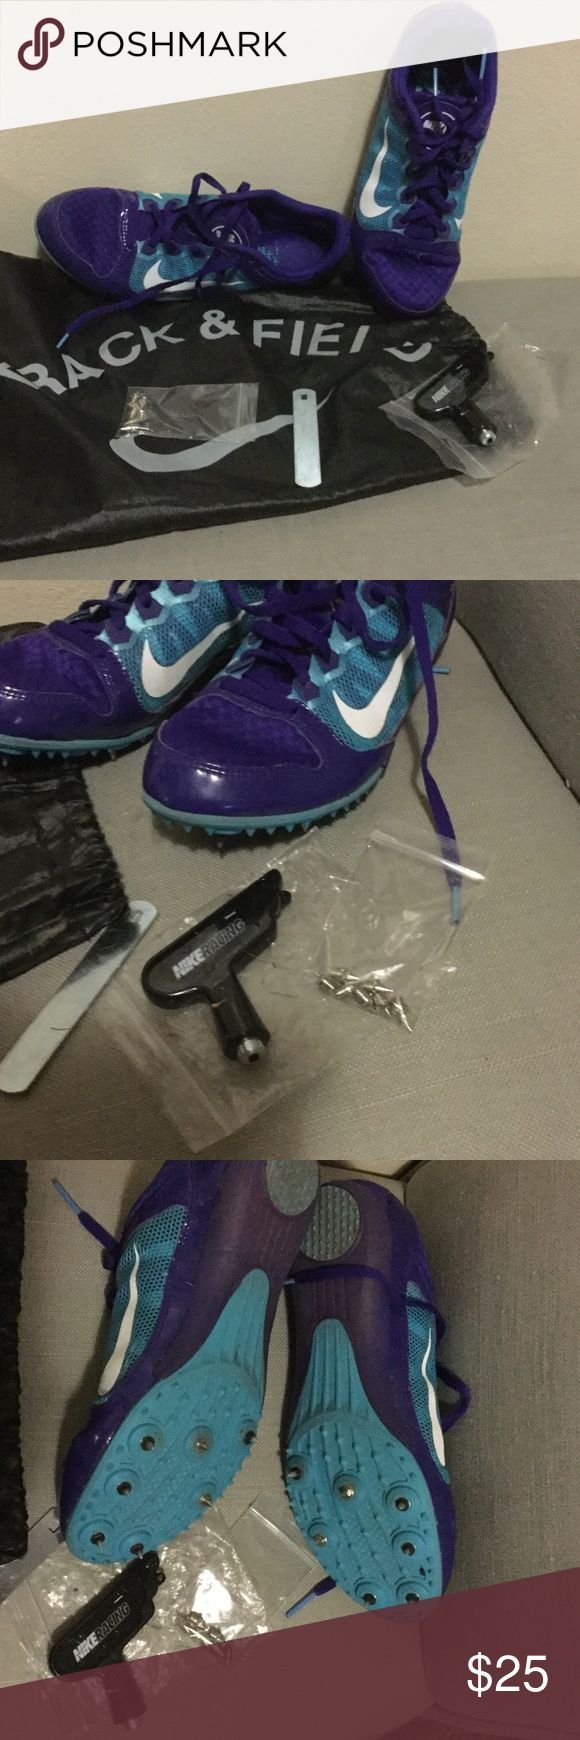 Nike track and field shoes. Use nike track and field tennis shoes. Are in good condition, came whit bag, tools and extra spike sets . Nike Shoes Athletic Shoes